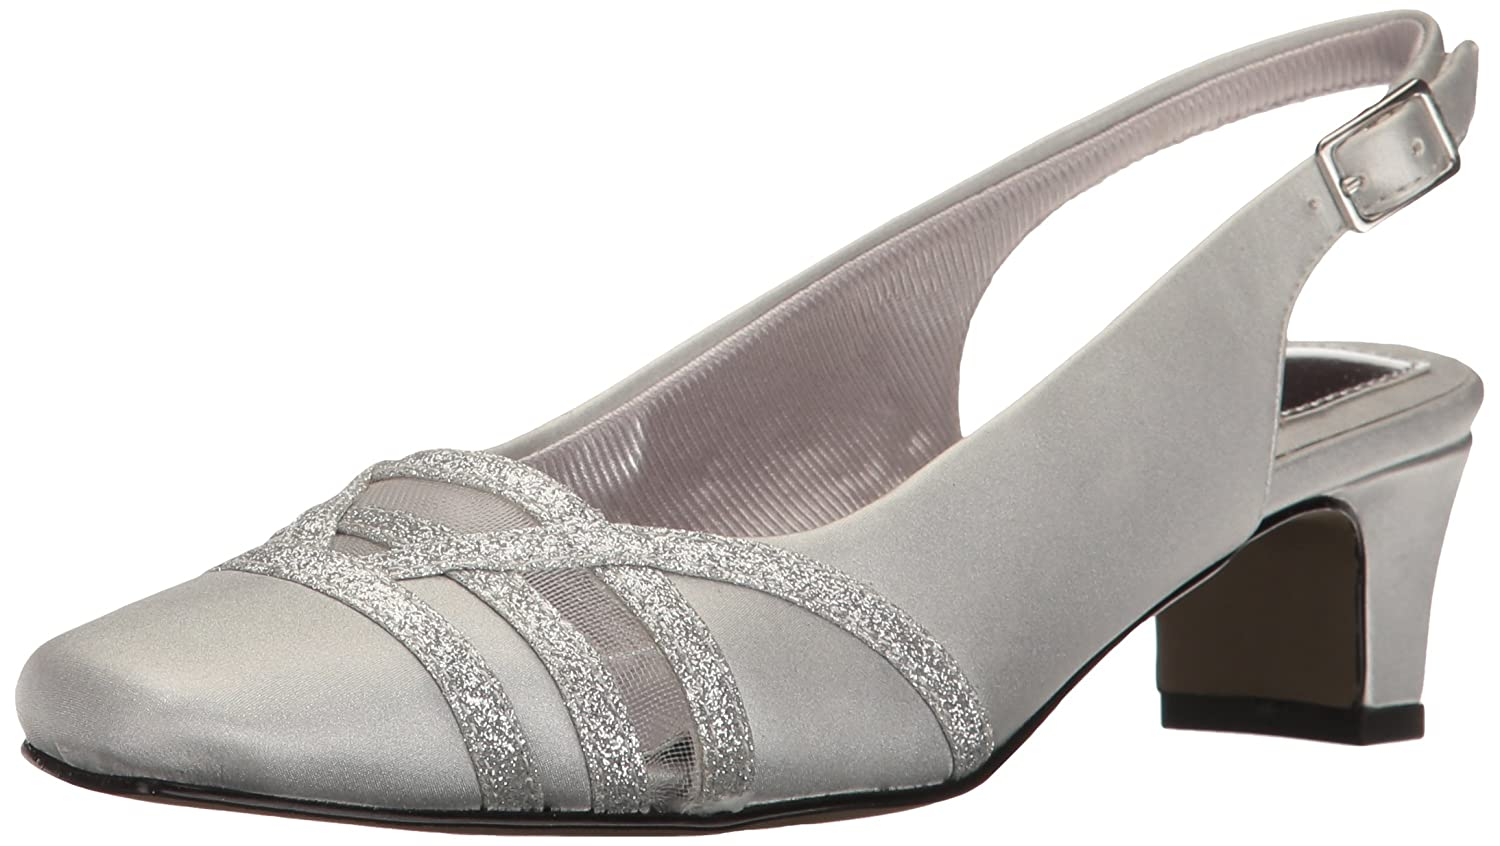 Easy Street Women's Kristen Dress Pump B01N47DBKG 10 B(M) US|Silver Satin/Silver